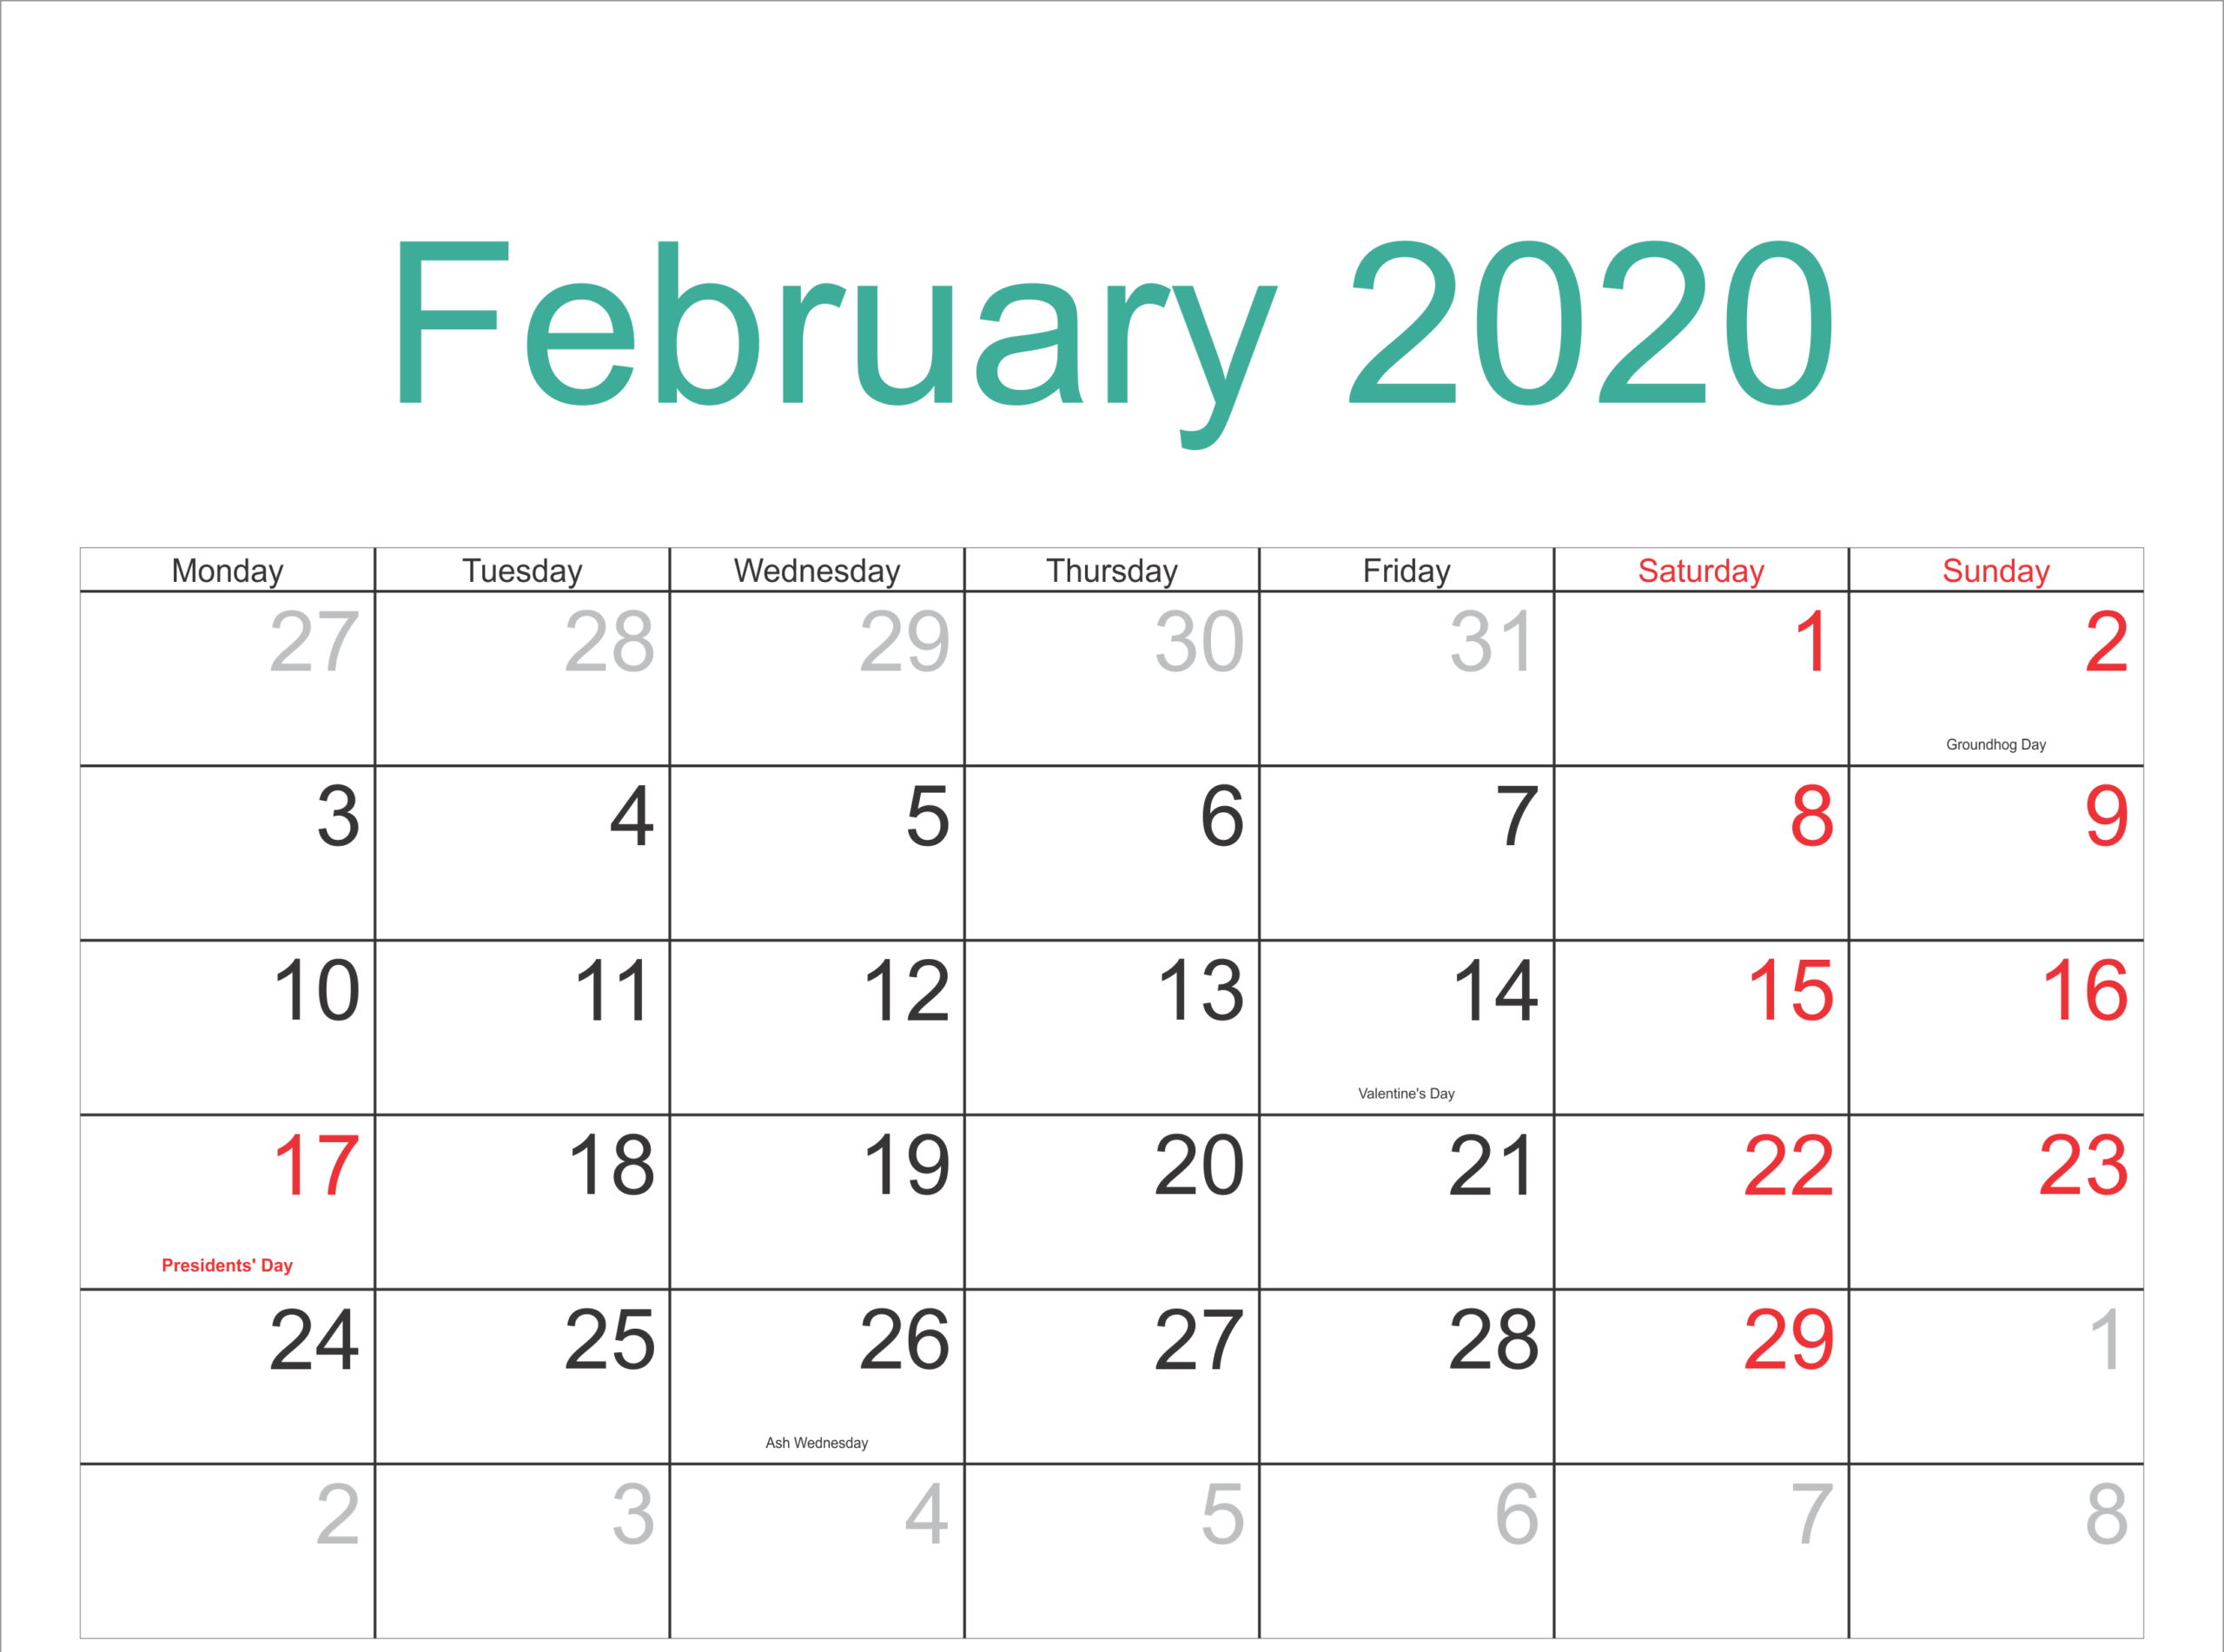 February 2020 Calendar Printable Holidays Full